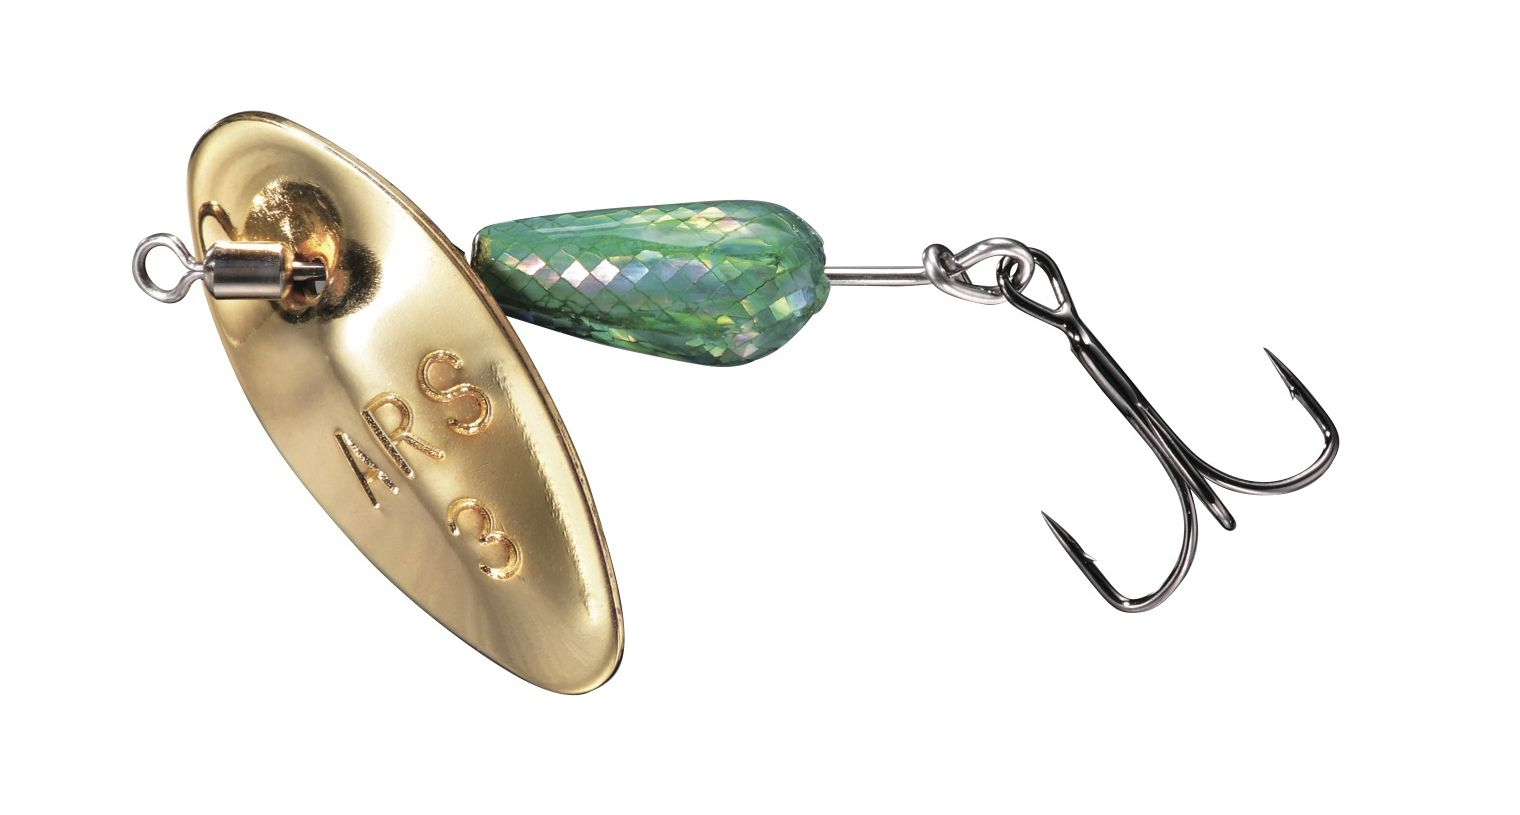 Блесна Smith AR Spinner Trout Model Shell 2,1гр